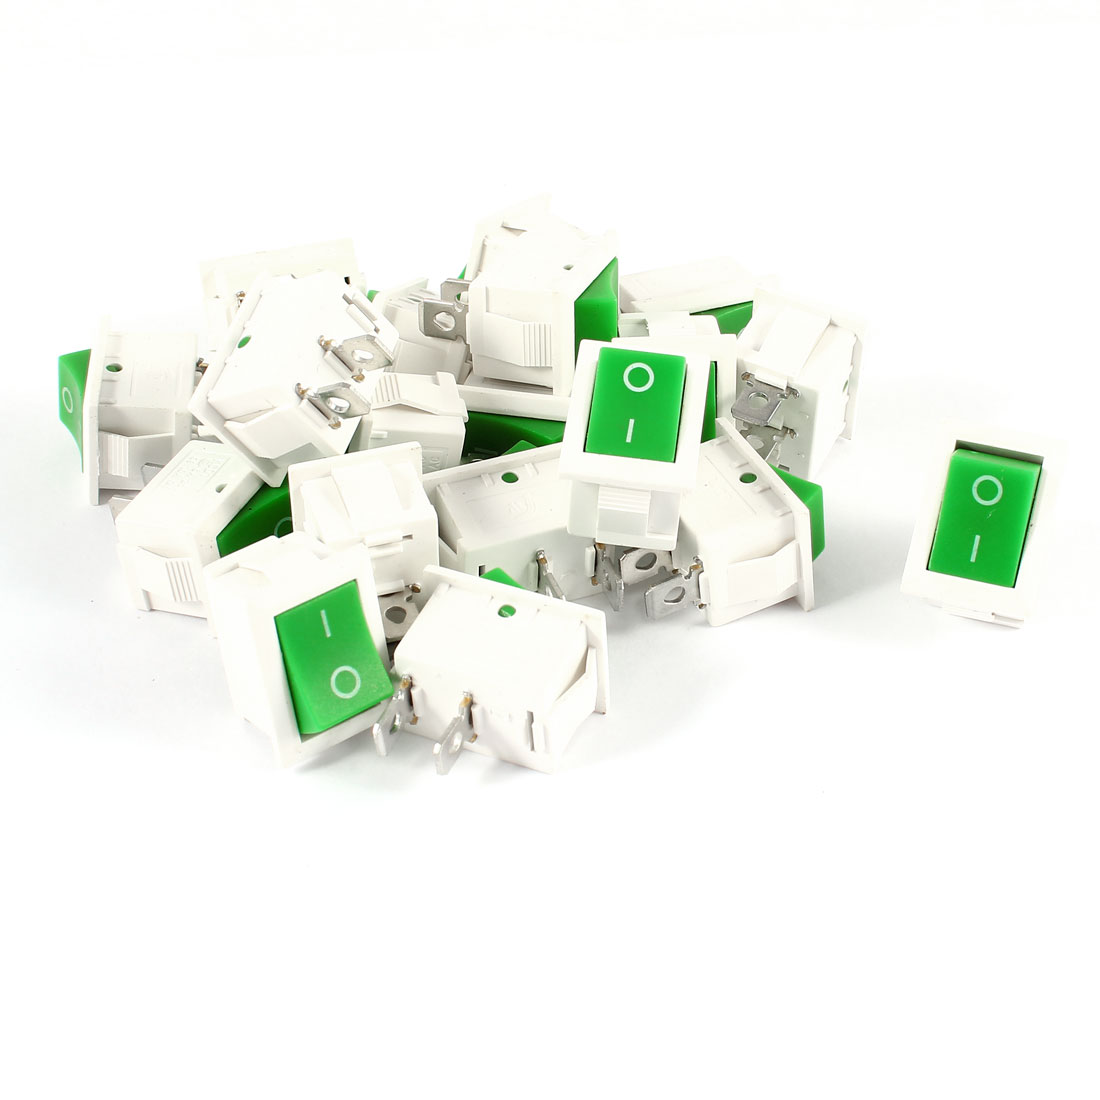 20 Pcs KCD1 AC 250V 6A 125V 10A 2Pin SPST Power ON/OFF Panel Mount Rocker Switch Green White